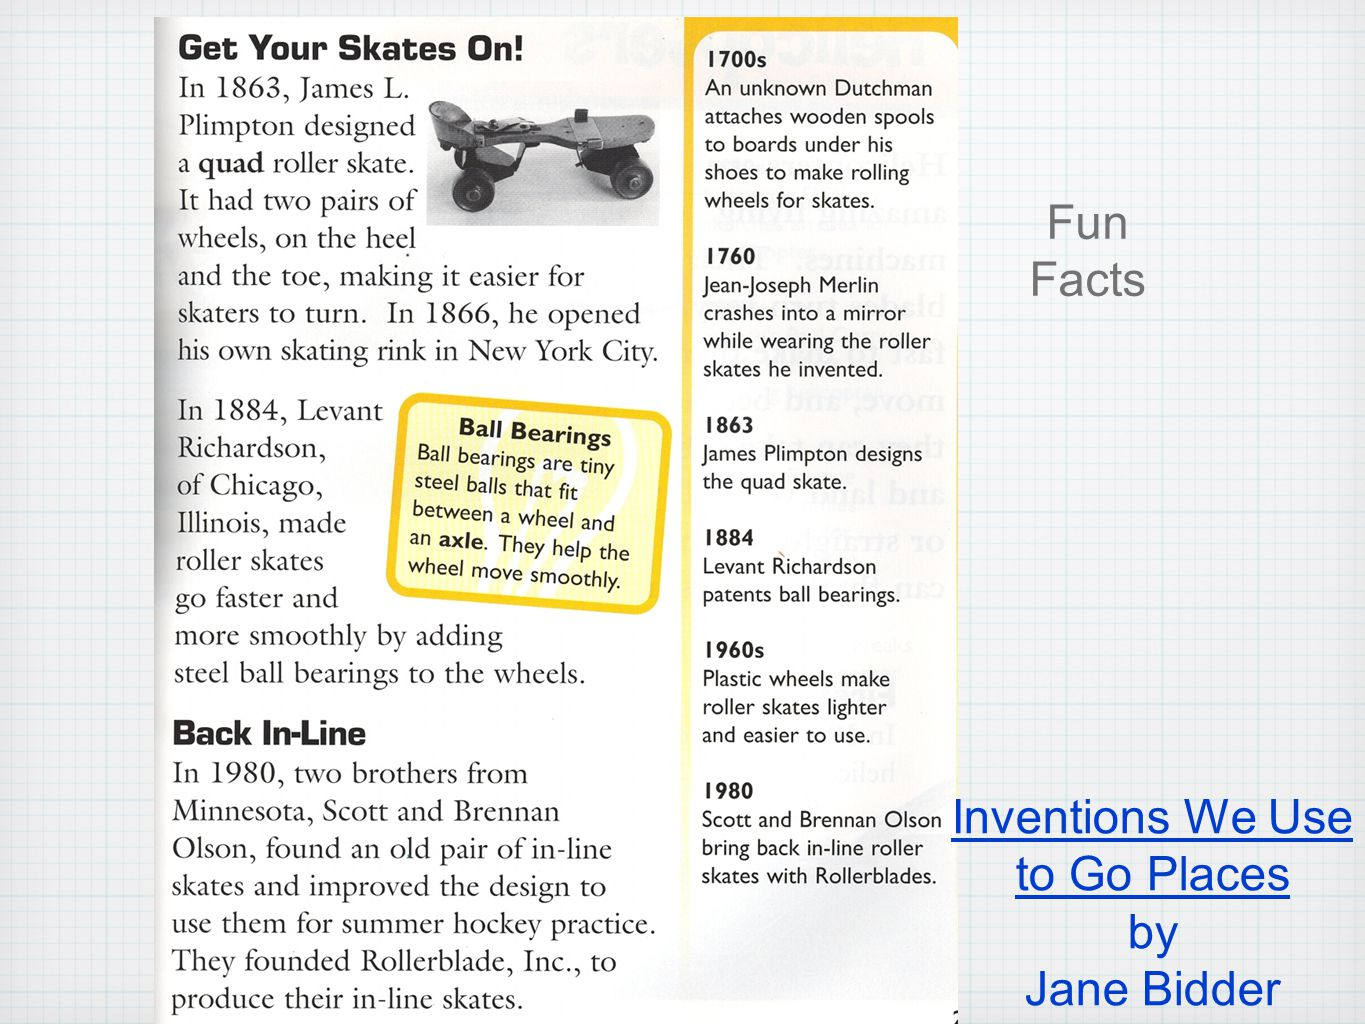 Inventions We Use to Go Places by Jane Bidder Fun Facts